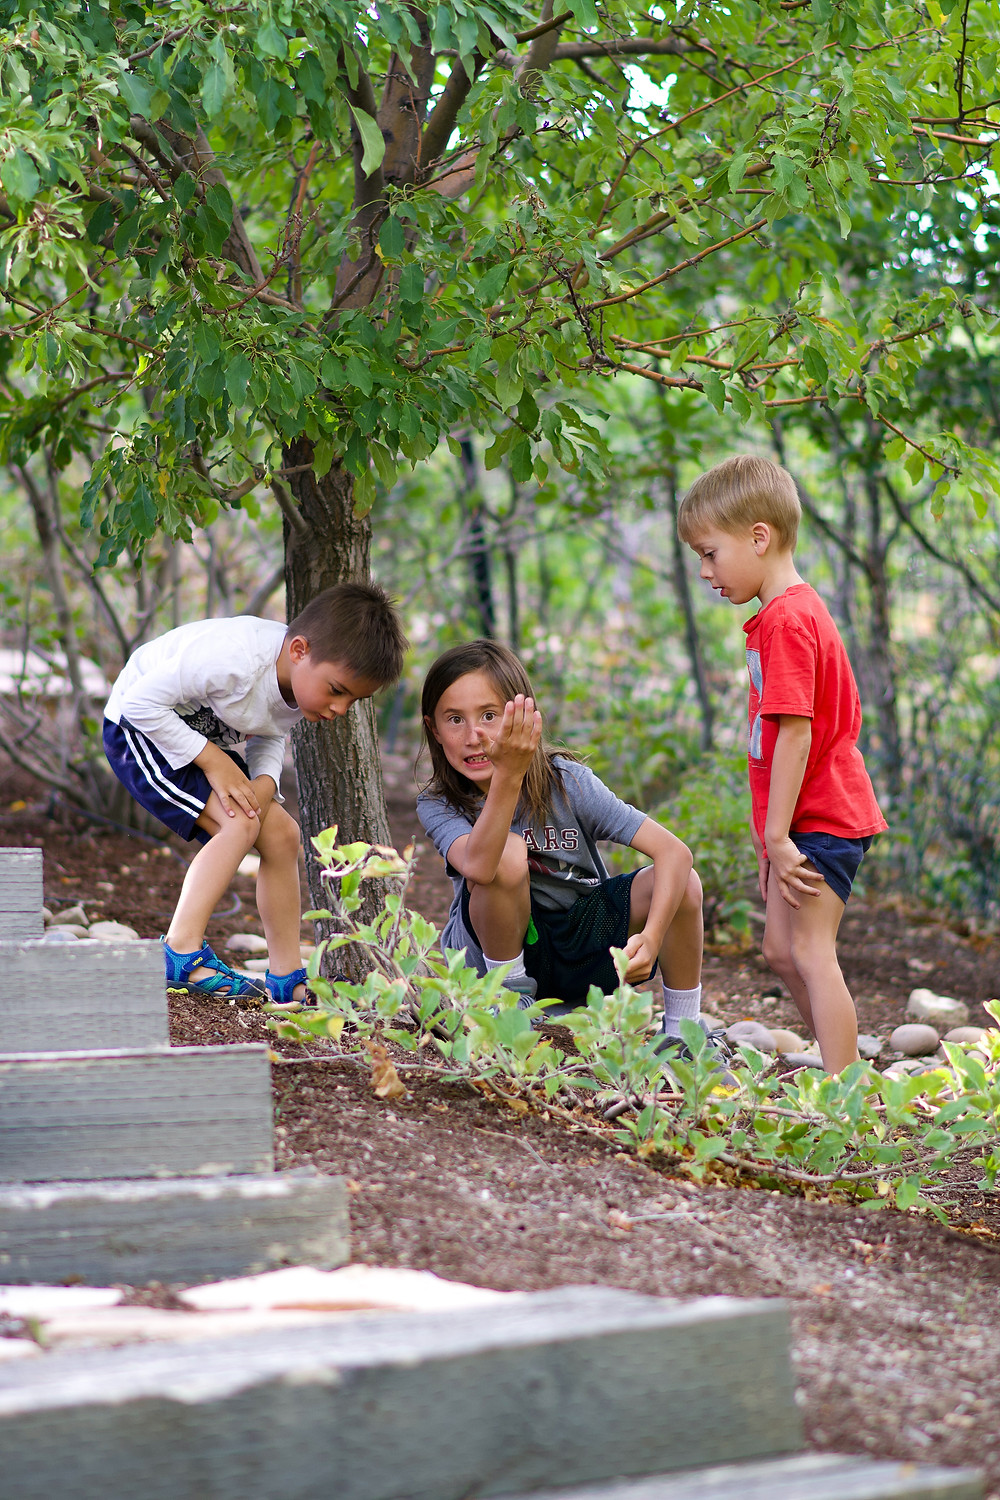 A mother sitting on the ground talking with two young boys who are planting seedlings